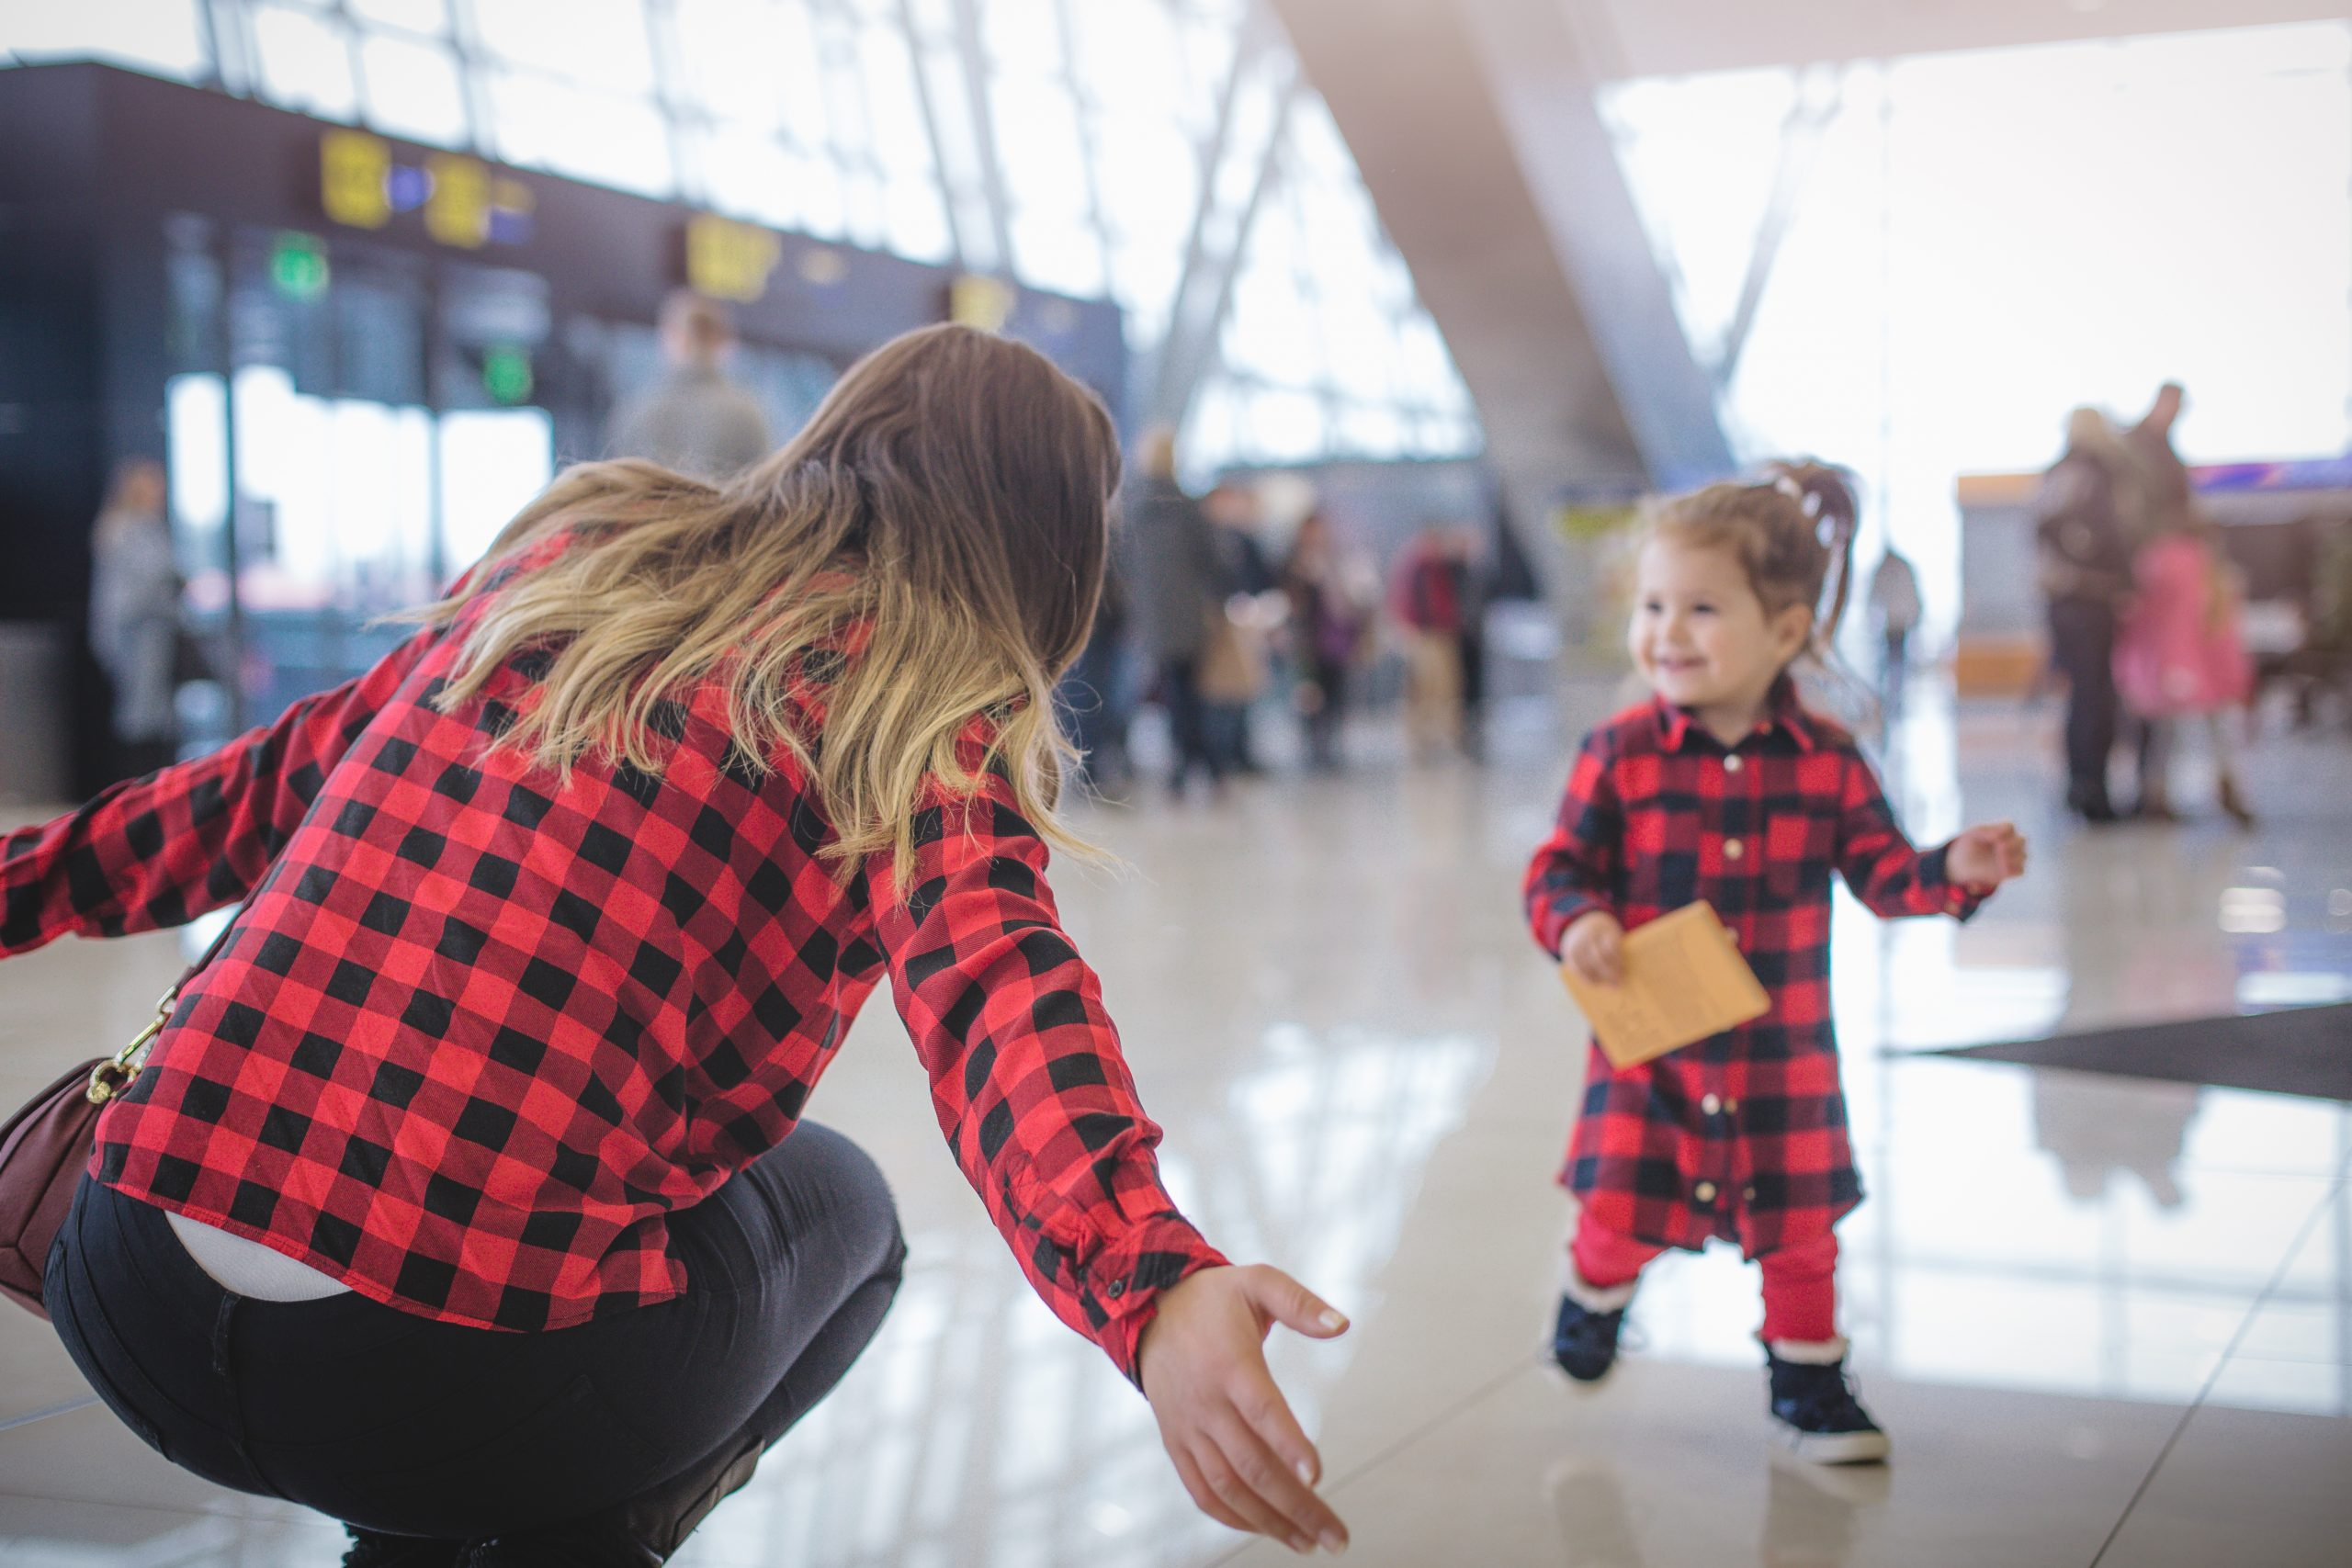 Mom is welcoming her baby girl with arms outstretched and matching clothes at station.